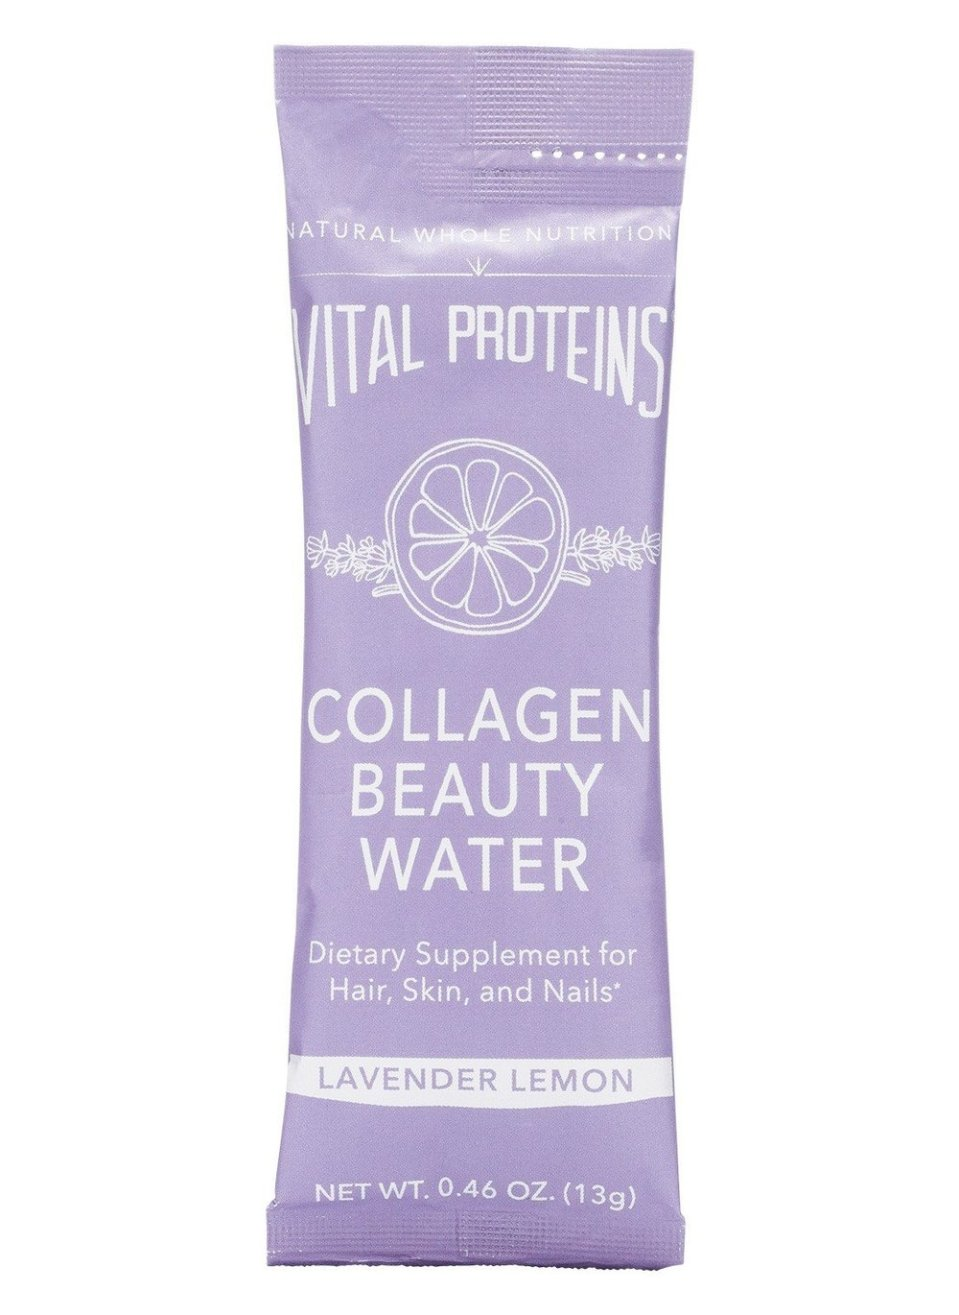 vital-proteins-collagen-beauty-water-lavender-lemon-Didnt-I-Just-Feed-You-podcast.jpg